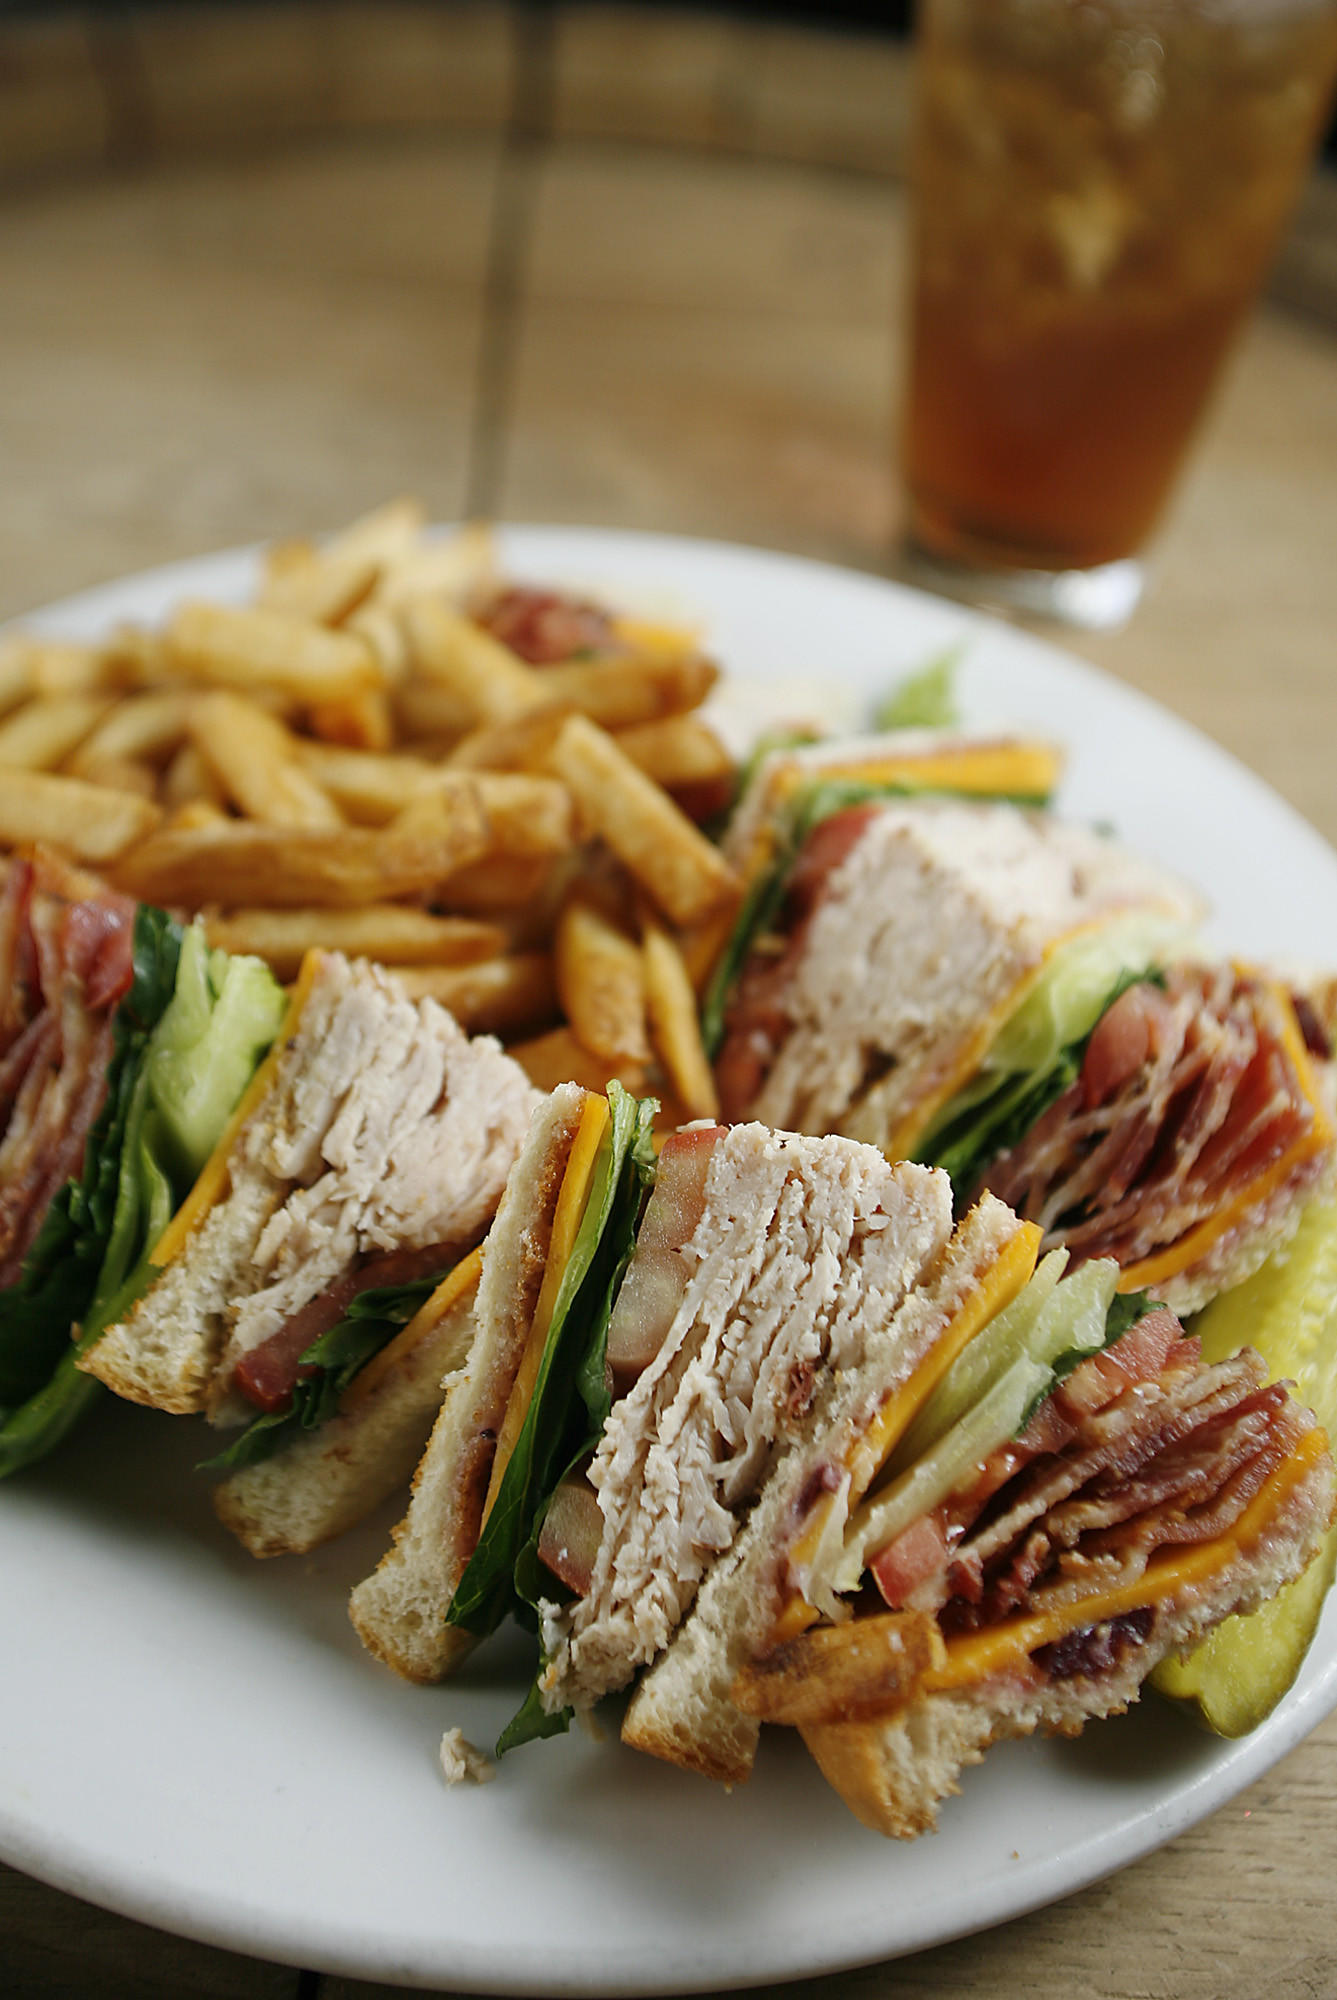 The price of a room service club sandwich was among the figures studied by TripAdvisor as it calculated the cost of in-room services in various cities.